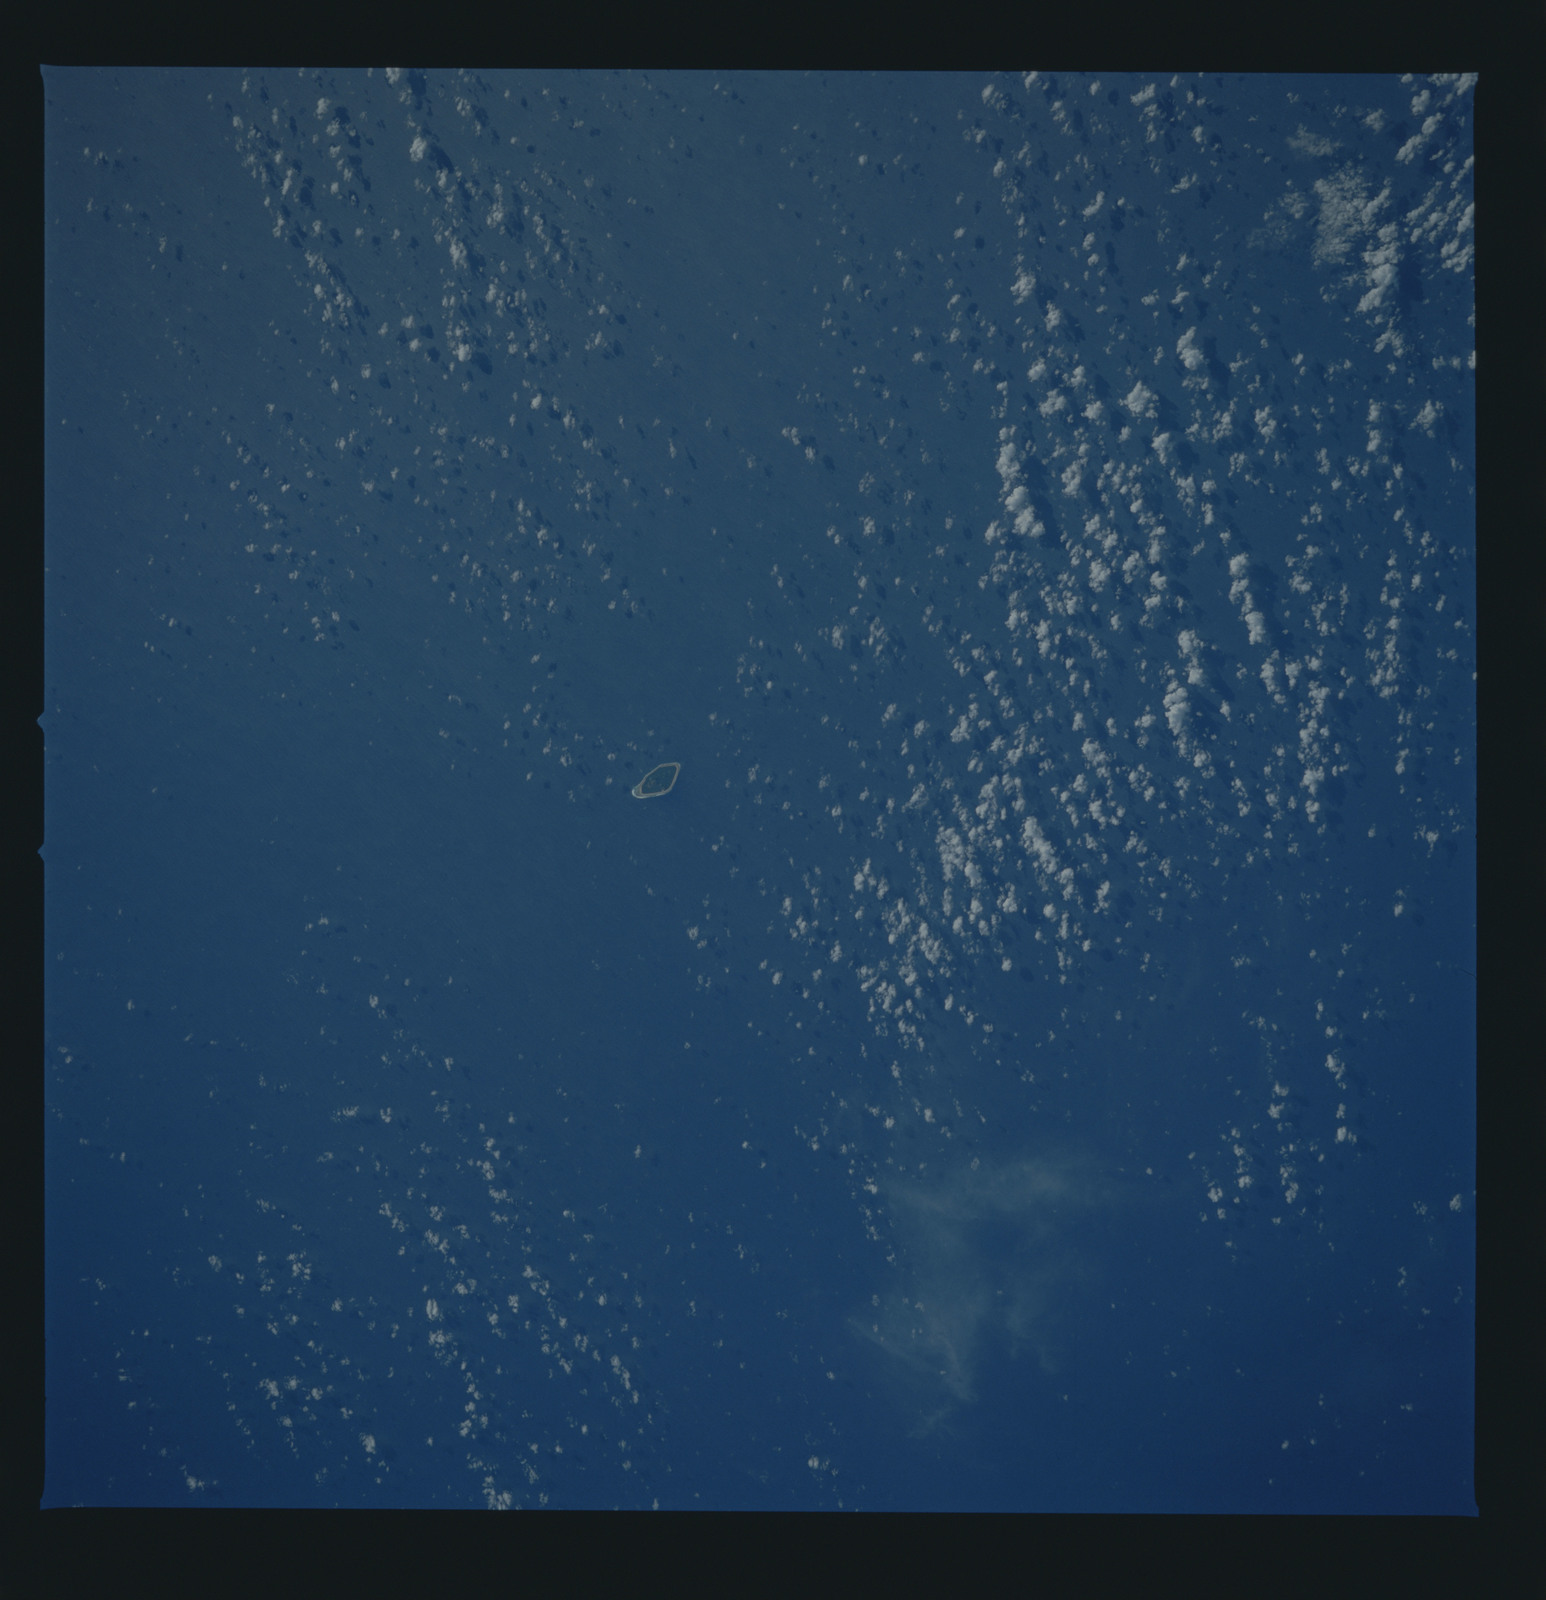 51B-41-021 - STS-51B - 51B earth observation